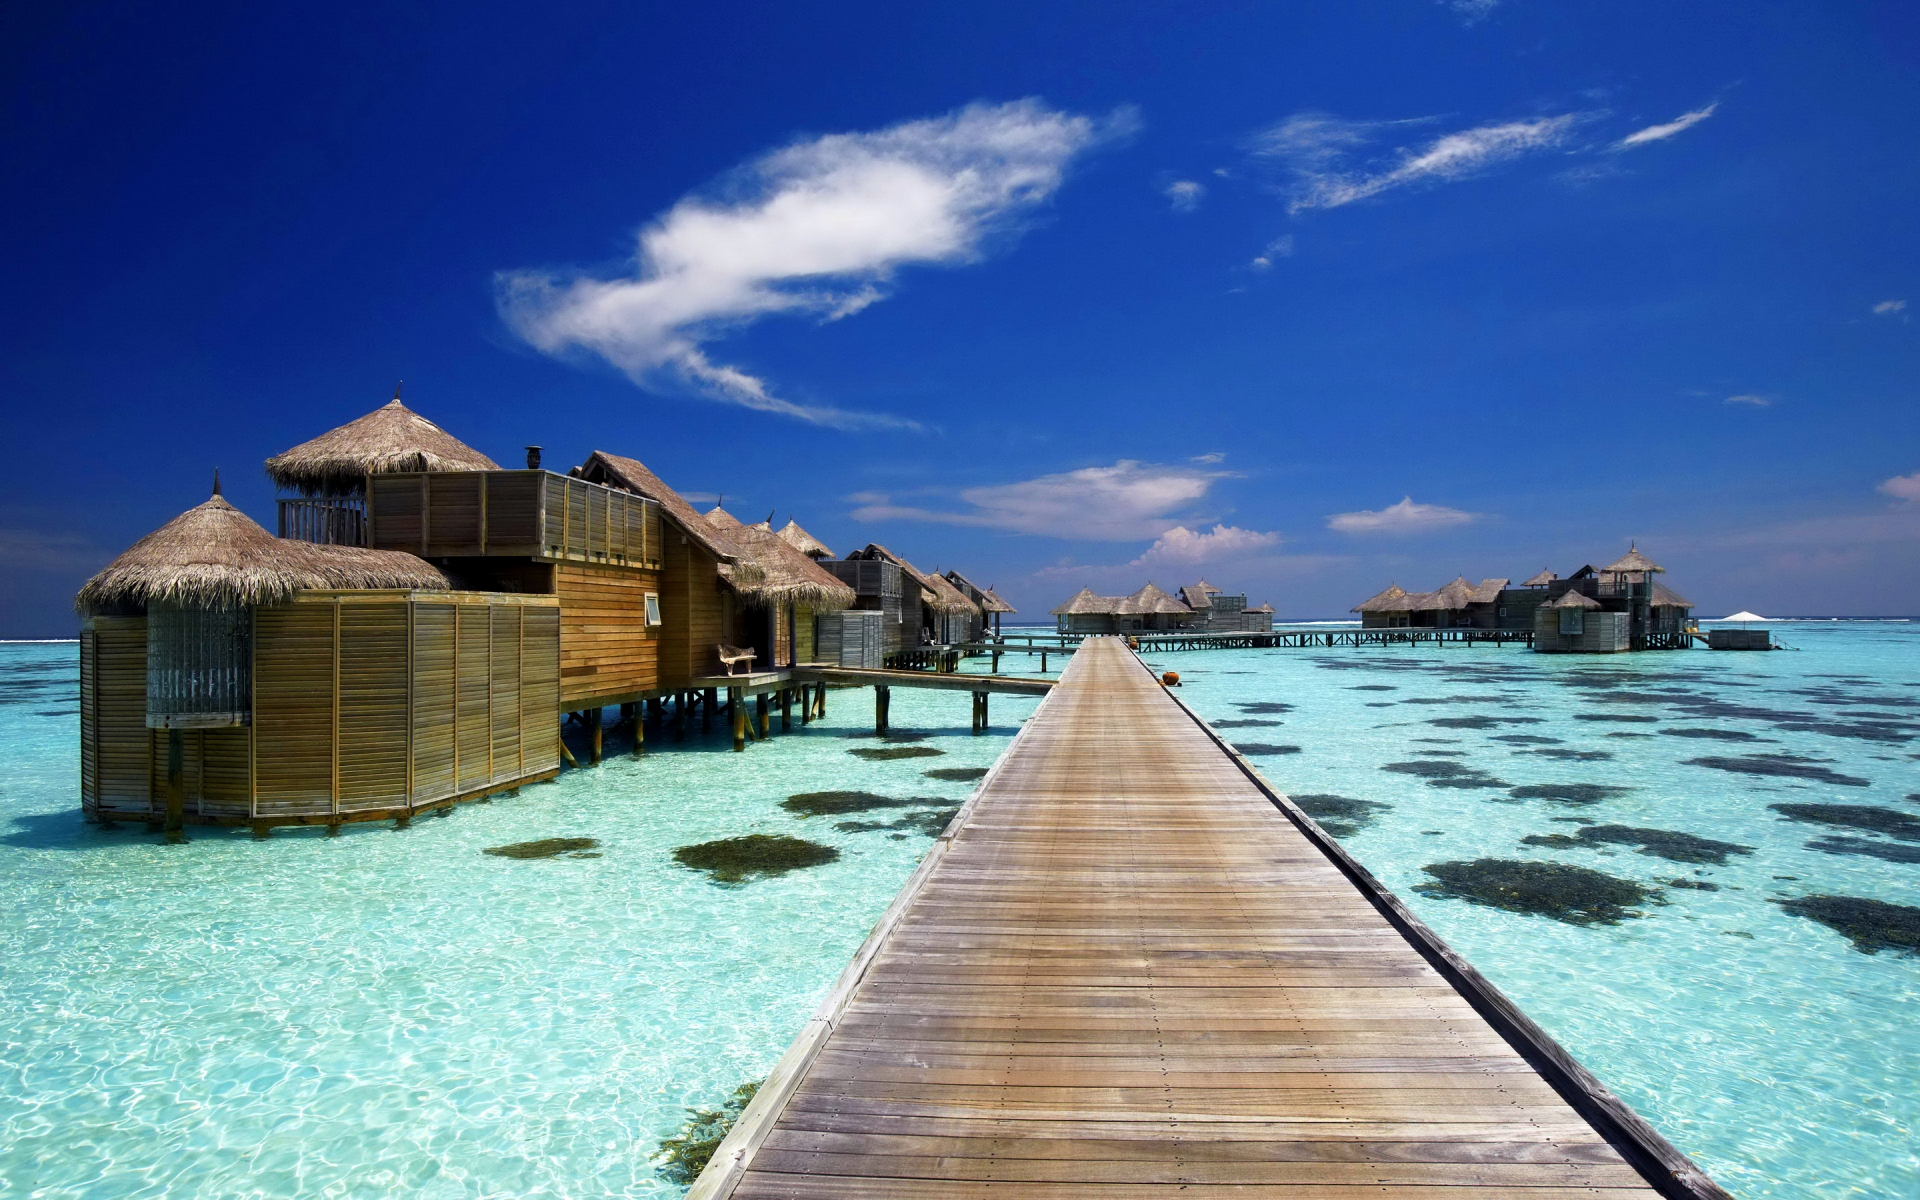 Luxury Resort in Maldives for 1920 x 1200 widescreen resolution